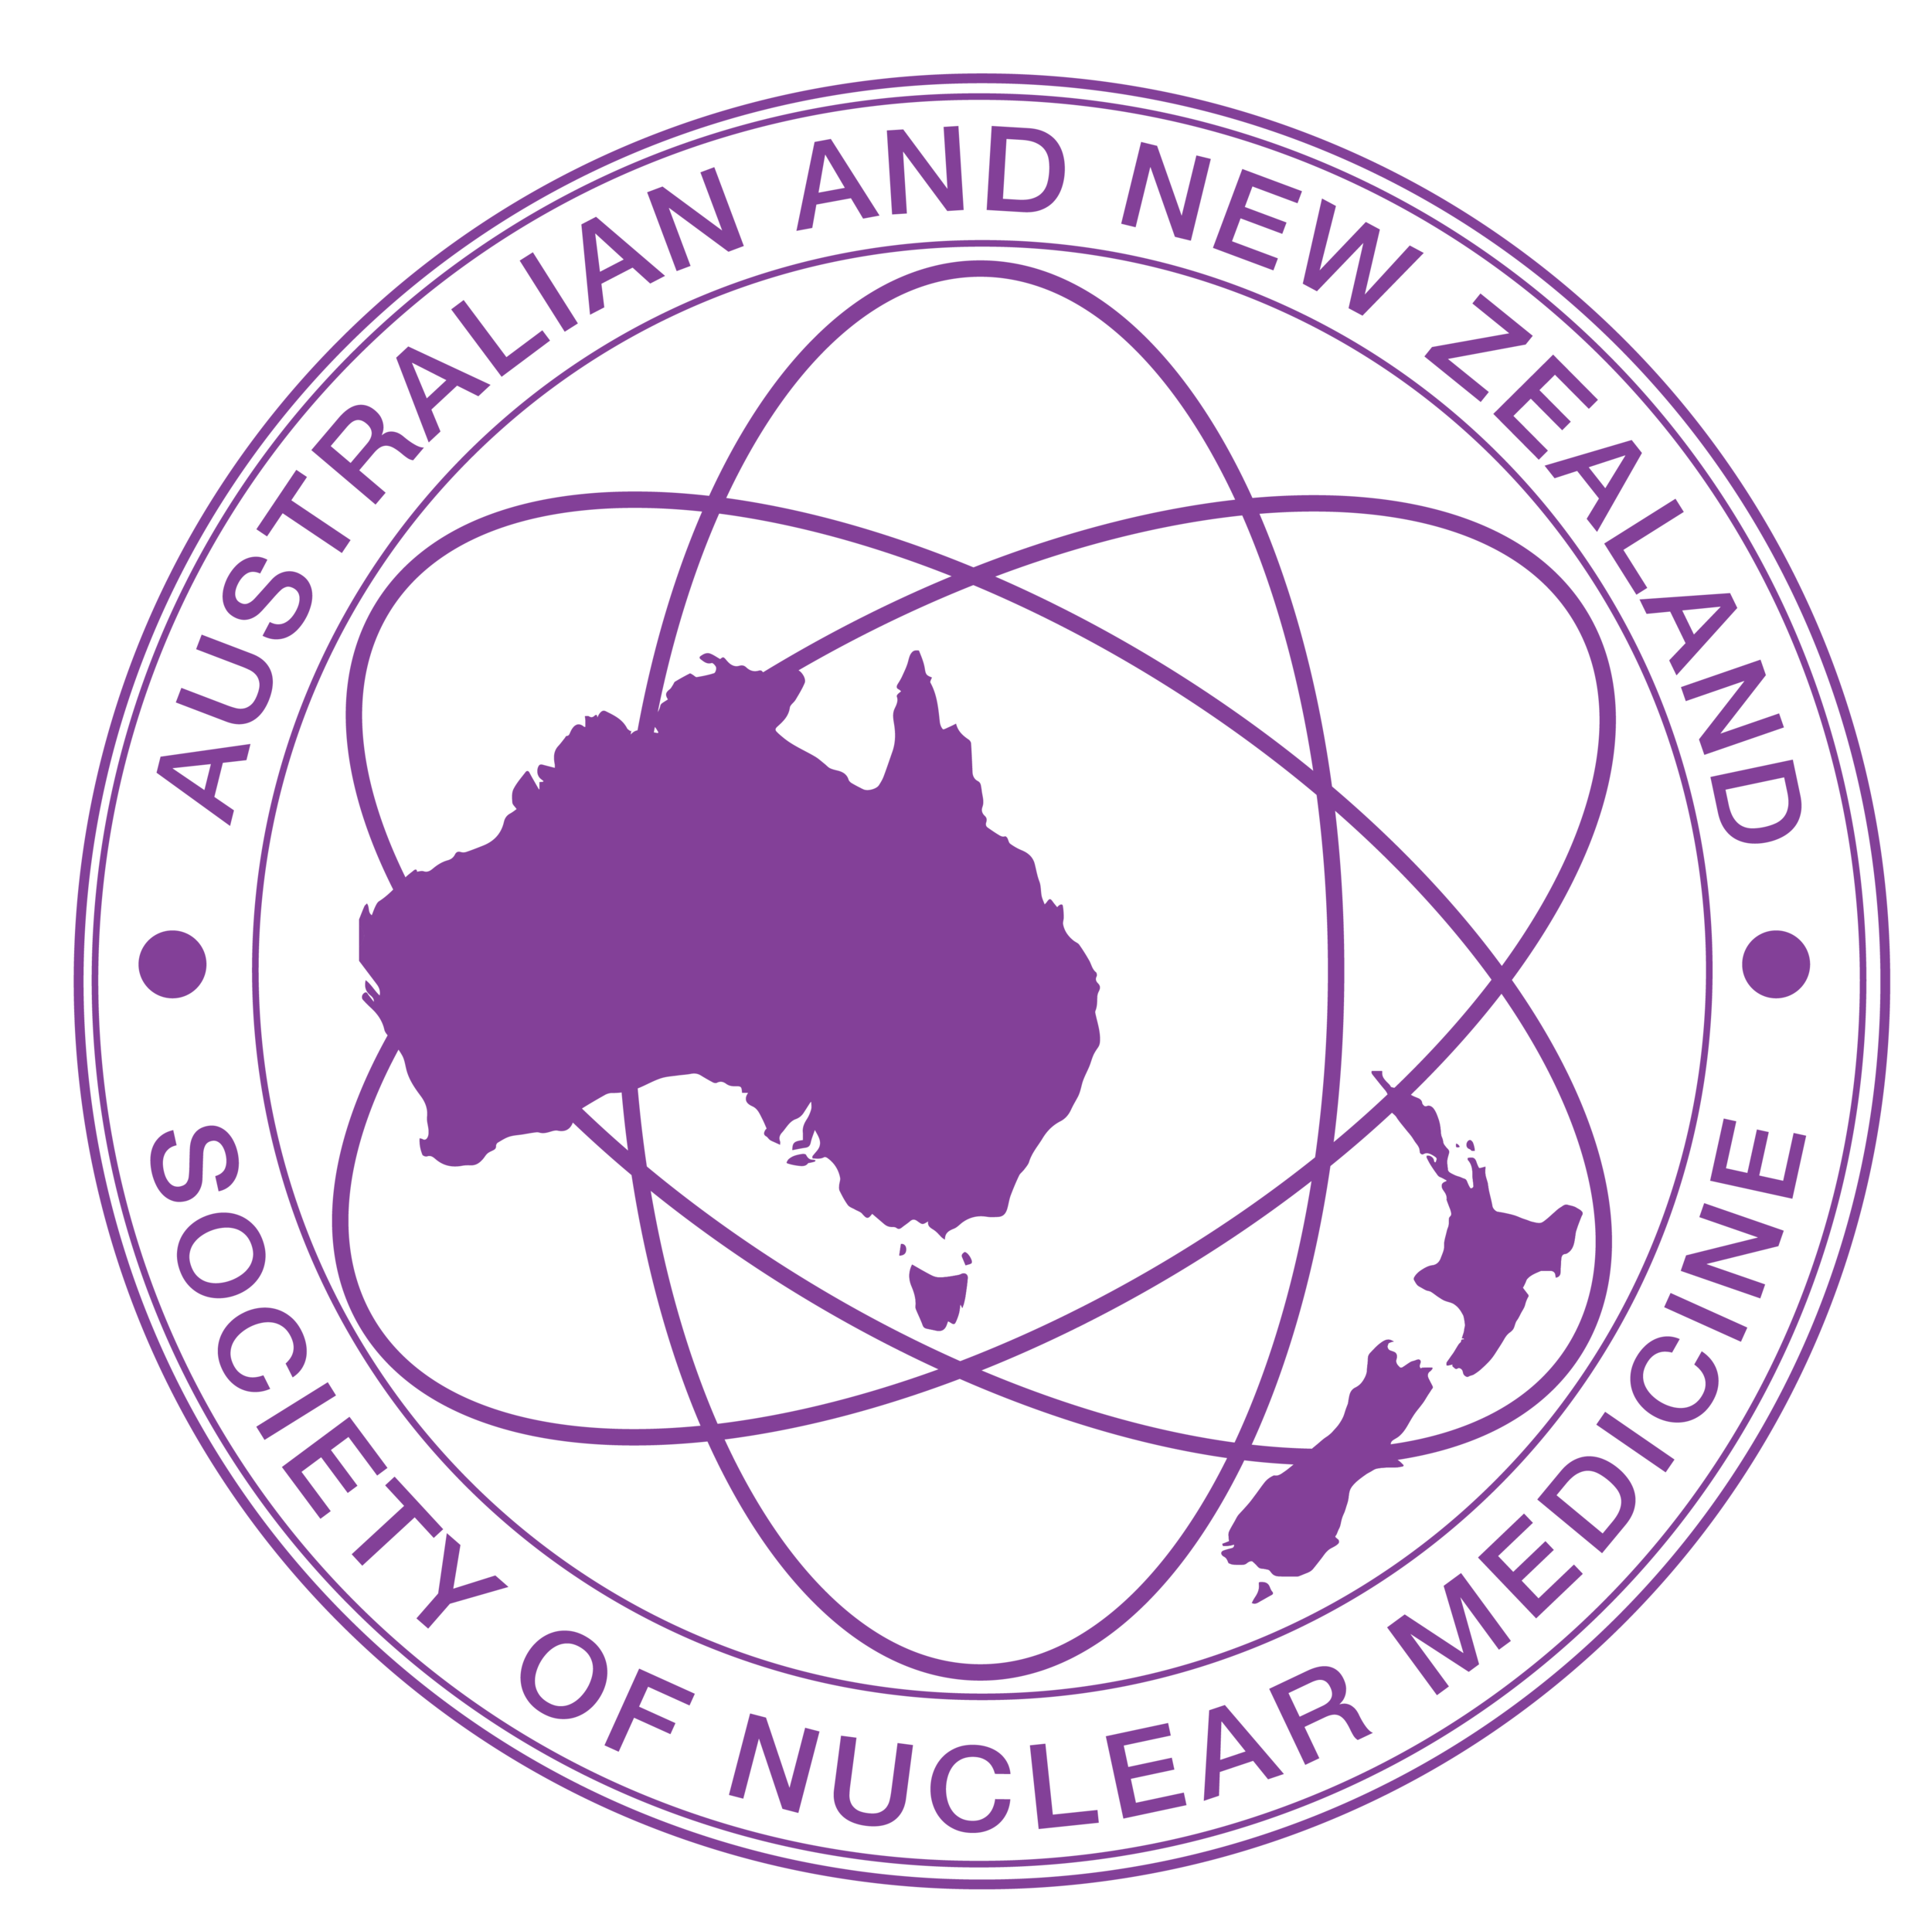 ANZSNM NEW LOGOS 29 MAY 2017_ANZSNM NEW LOGO PURPLE.png